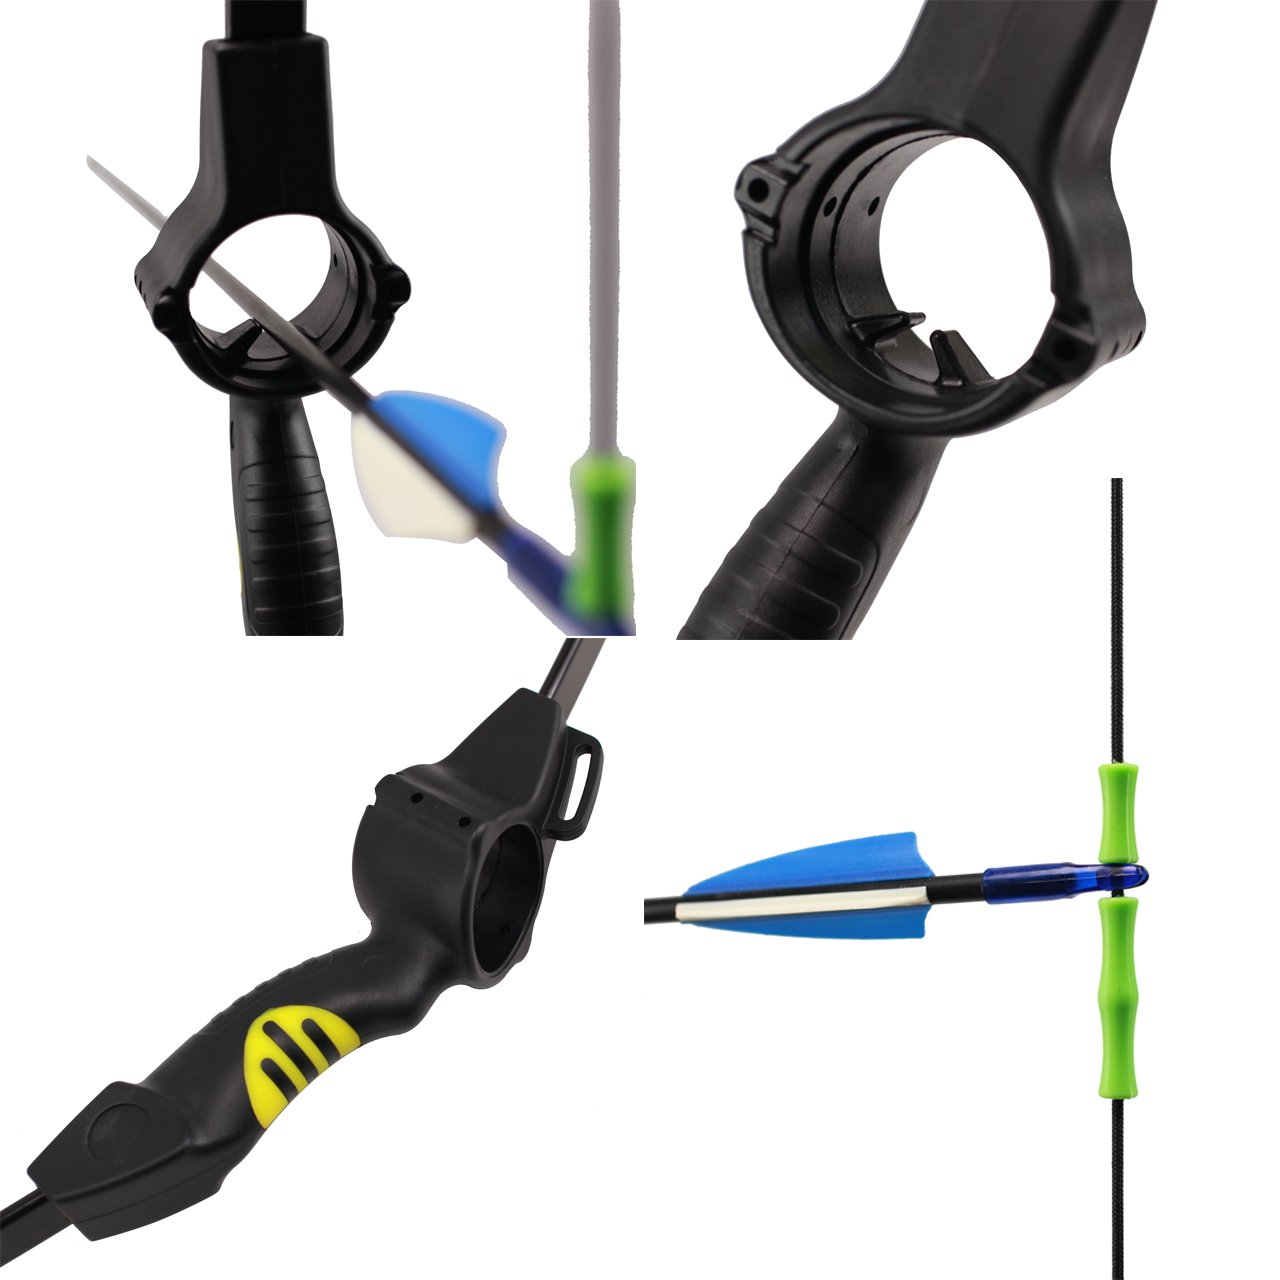 SinoArt Recurve Bow Adjustable Length 48.5''-50'' Draw Weight 14-16 Lb Right and Left Hand with 9 Arrows and 3 Target Faces by SinoArt (Image #4)